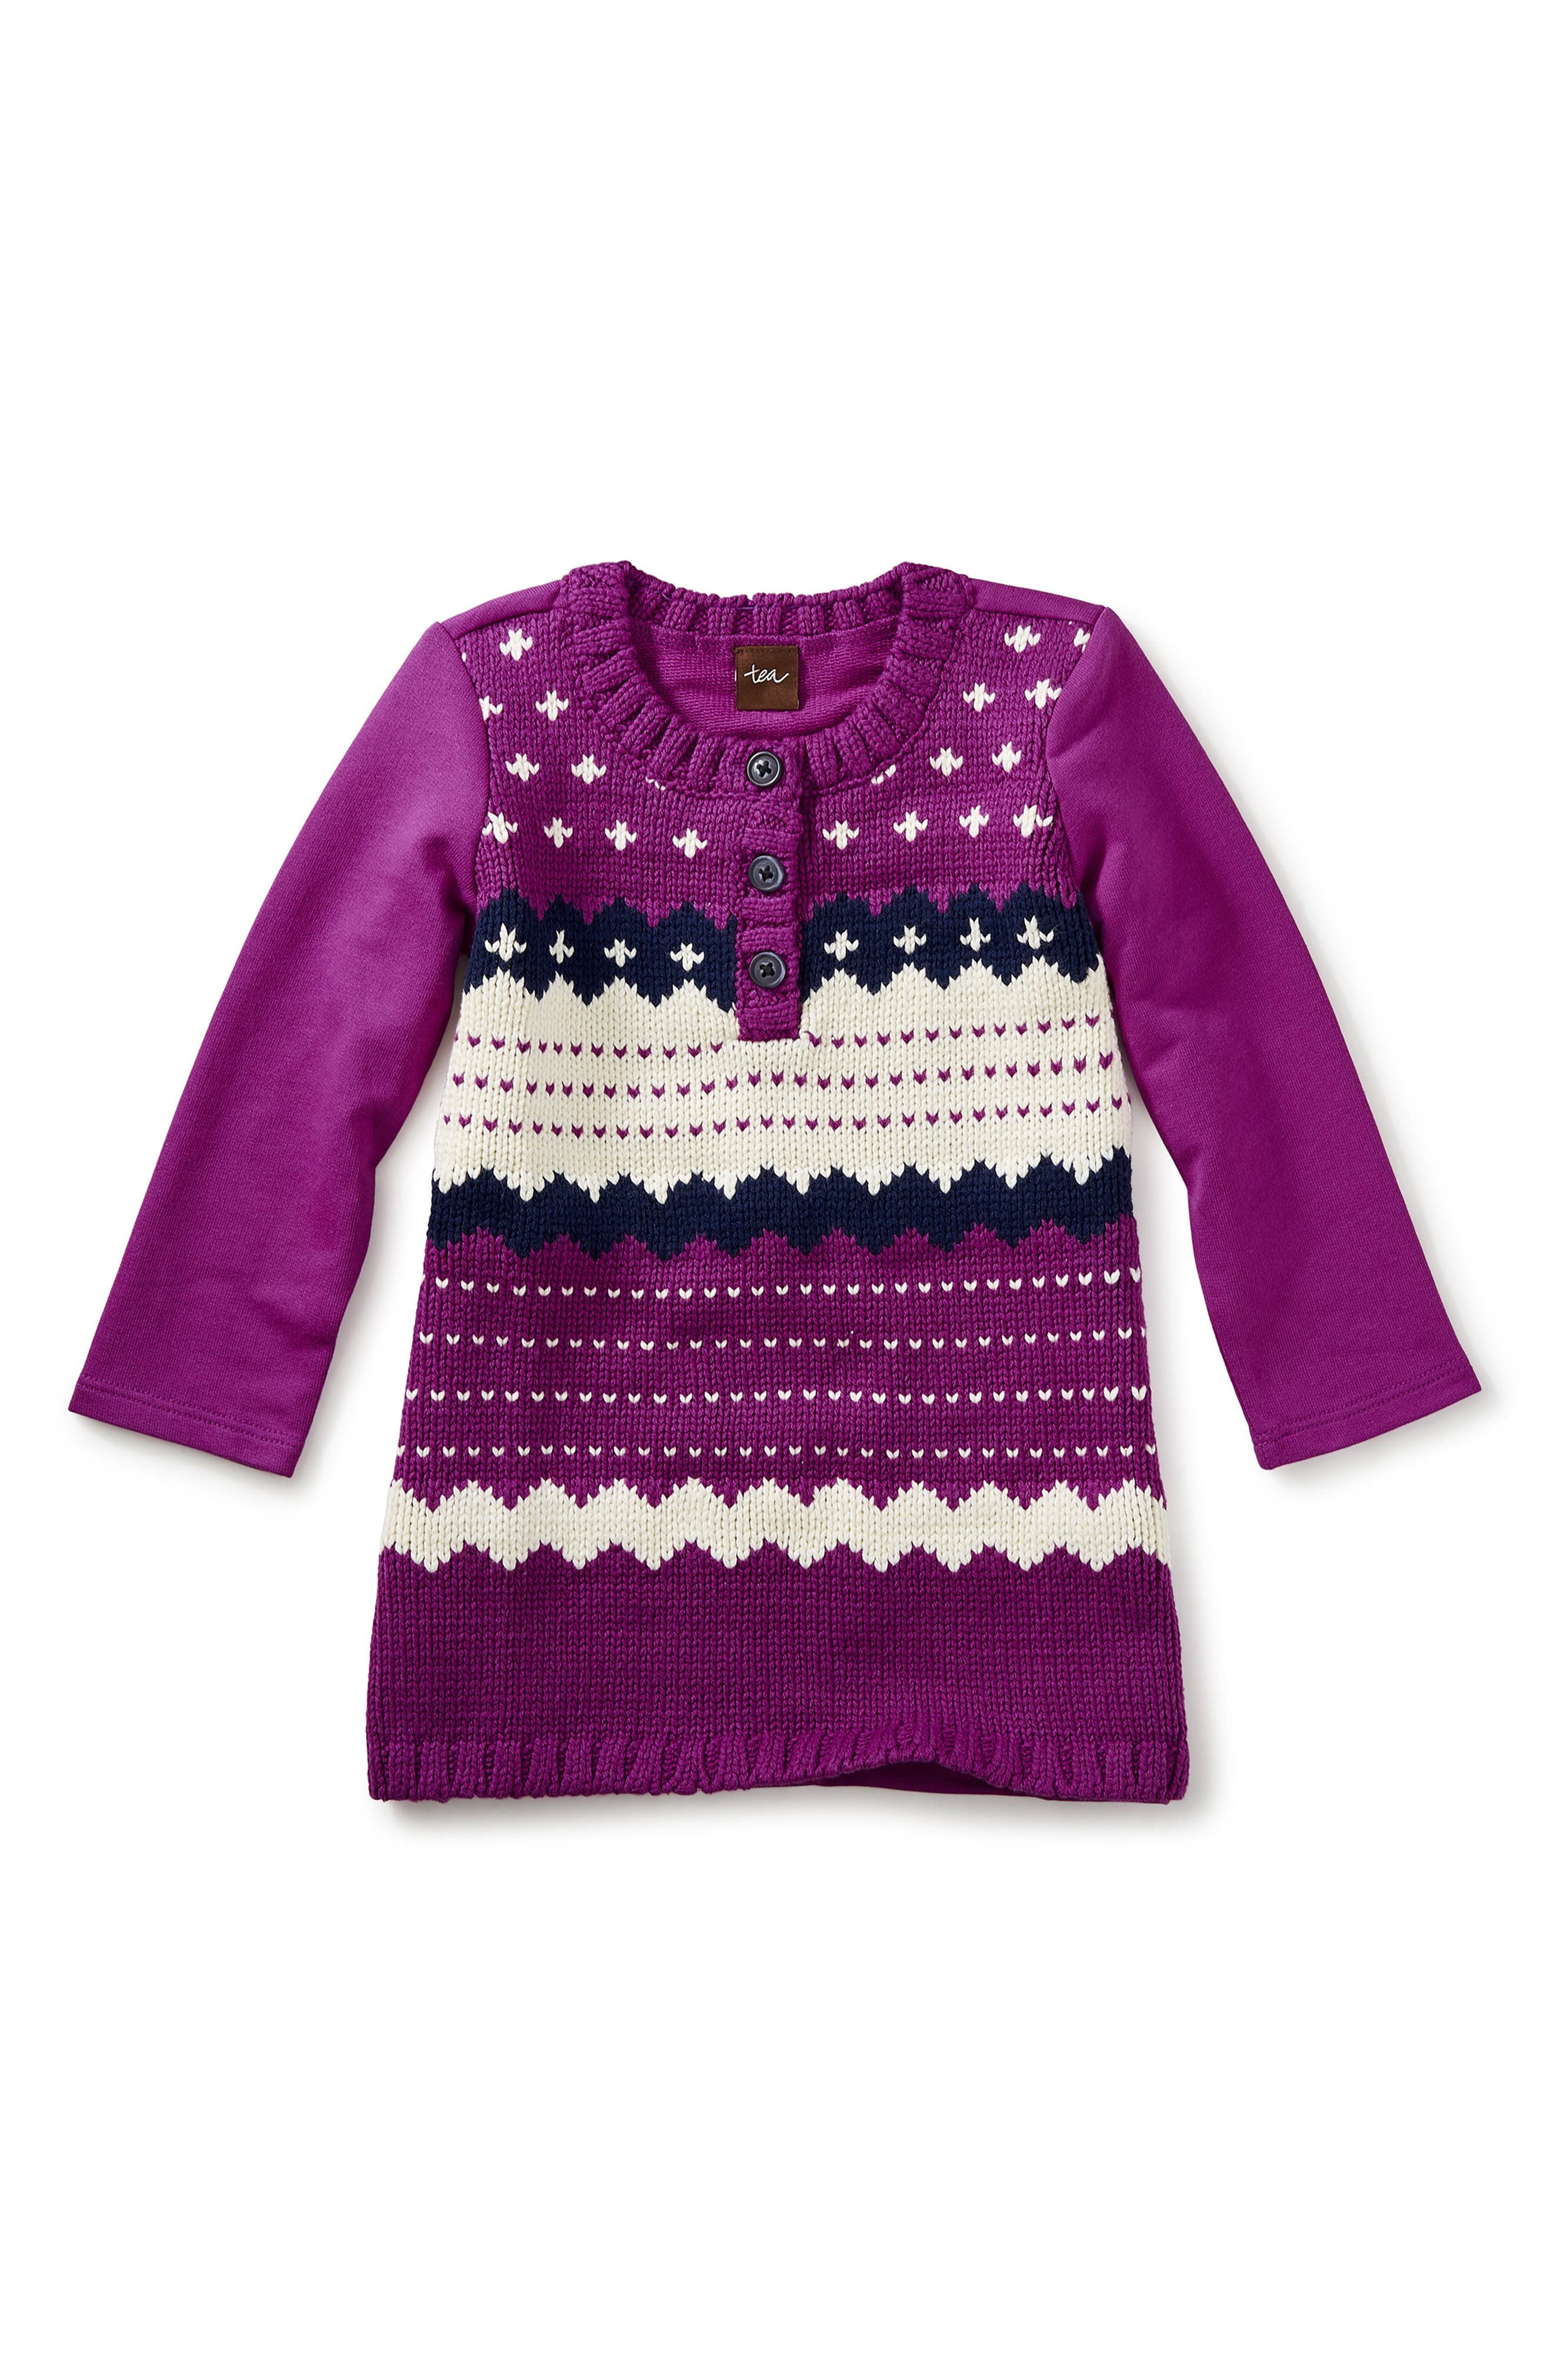 Alternate Image 1 Selected - Tea Collection Fair Isle Sweater Dress (Baby Girls)